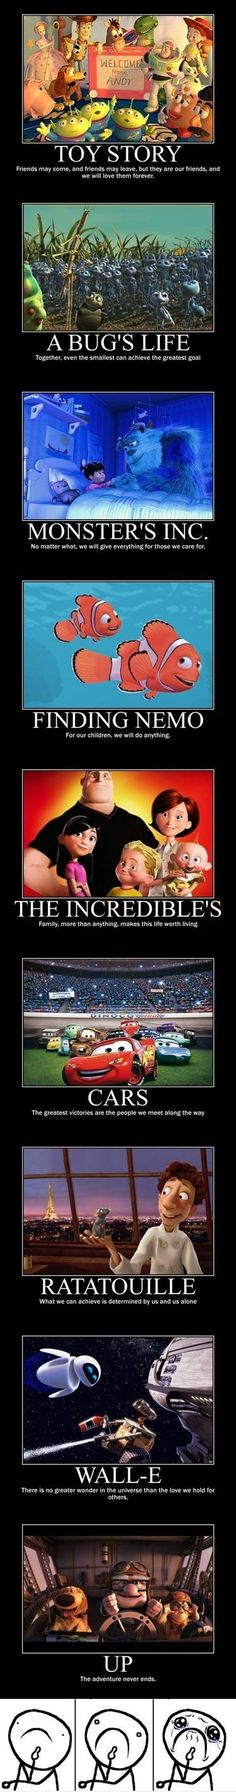 Pixar movies are the best!